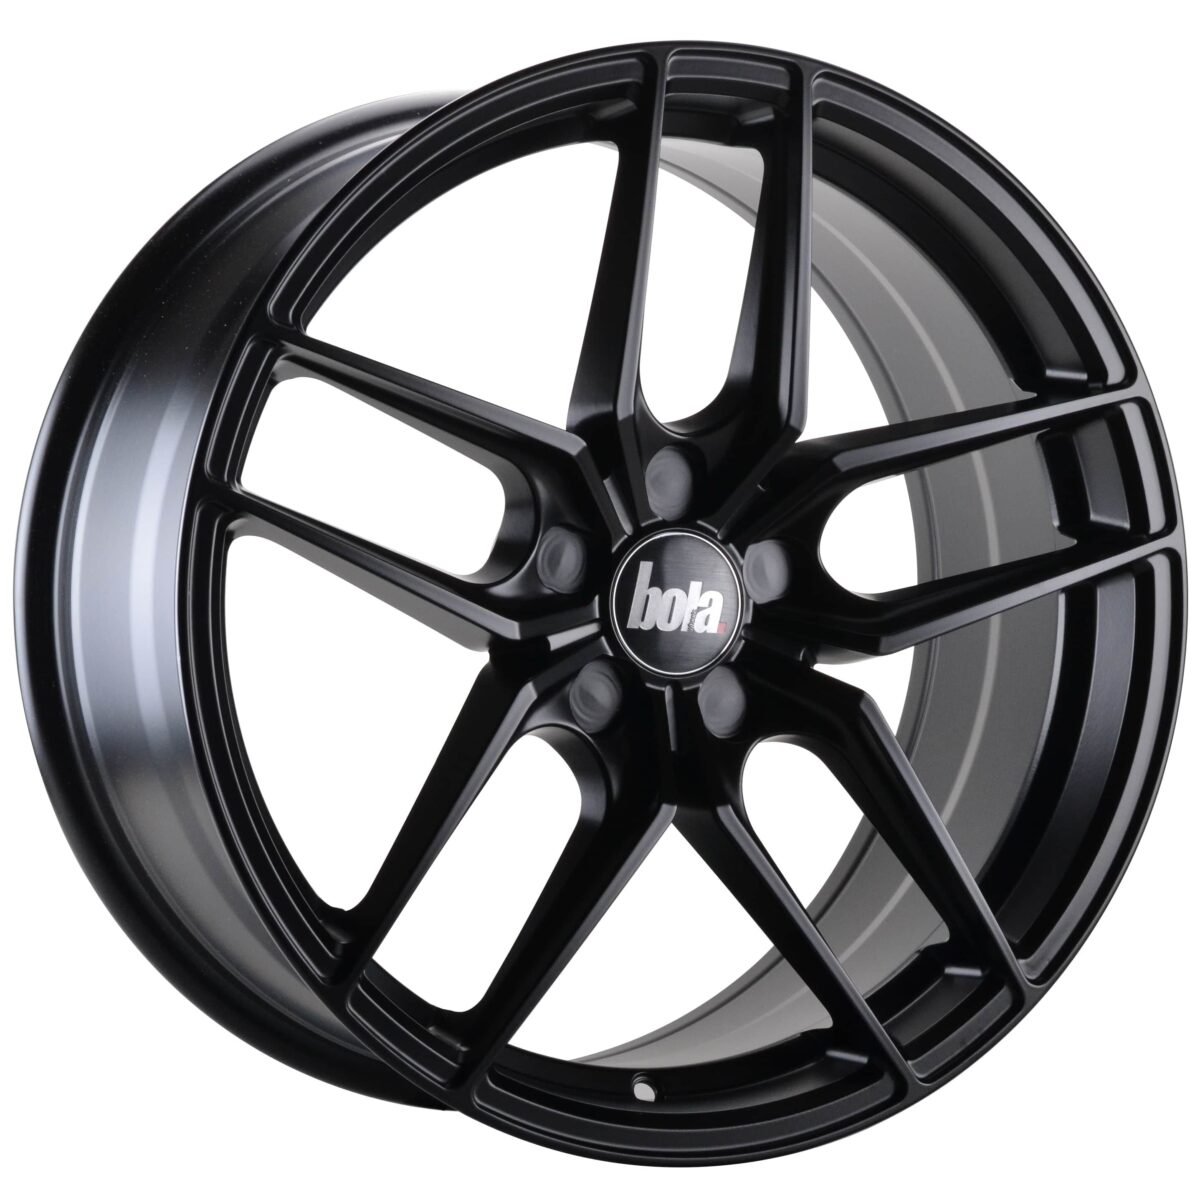 "18"" BOLA B11 Wheels - Matt Black - VW / Audi / Mercedes - 5x112"